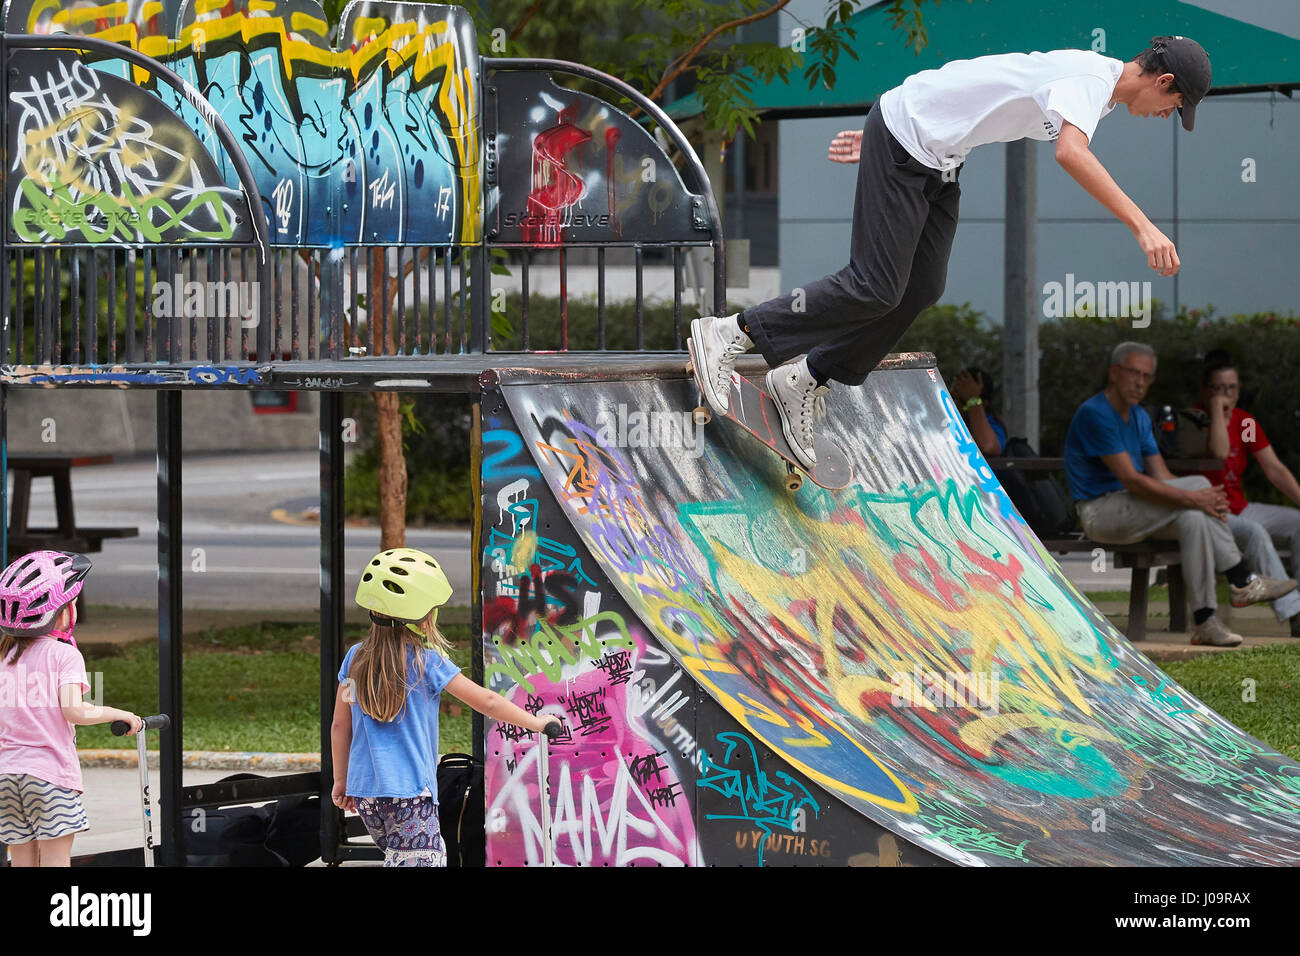 Young Asian Man Skateboarding In The SCAPE Skate Park